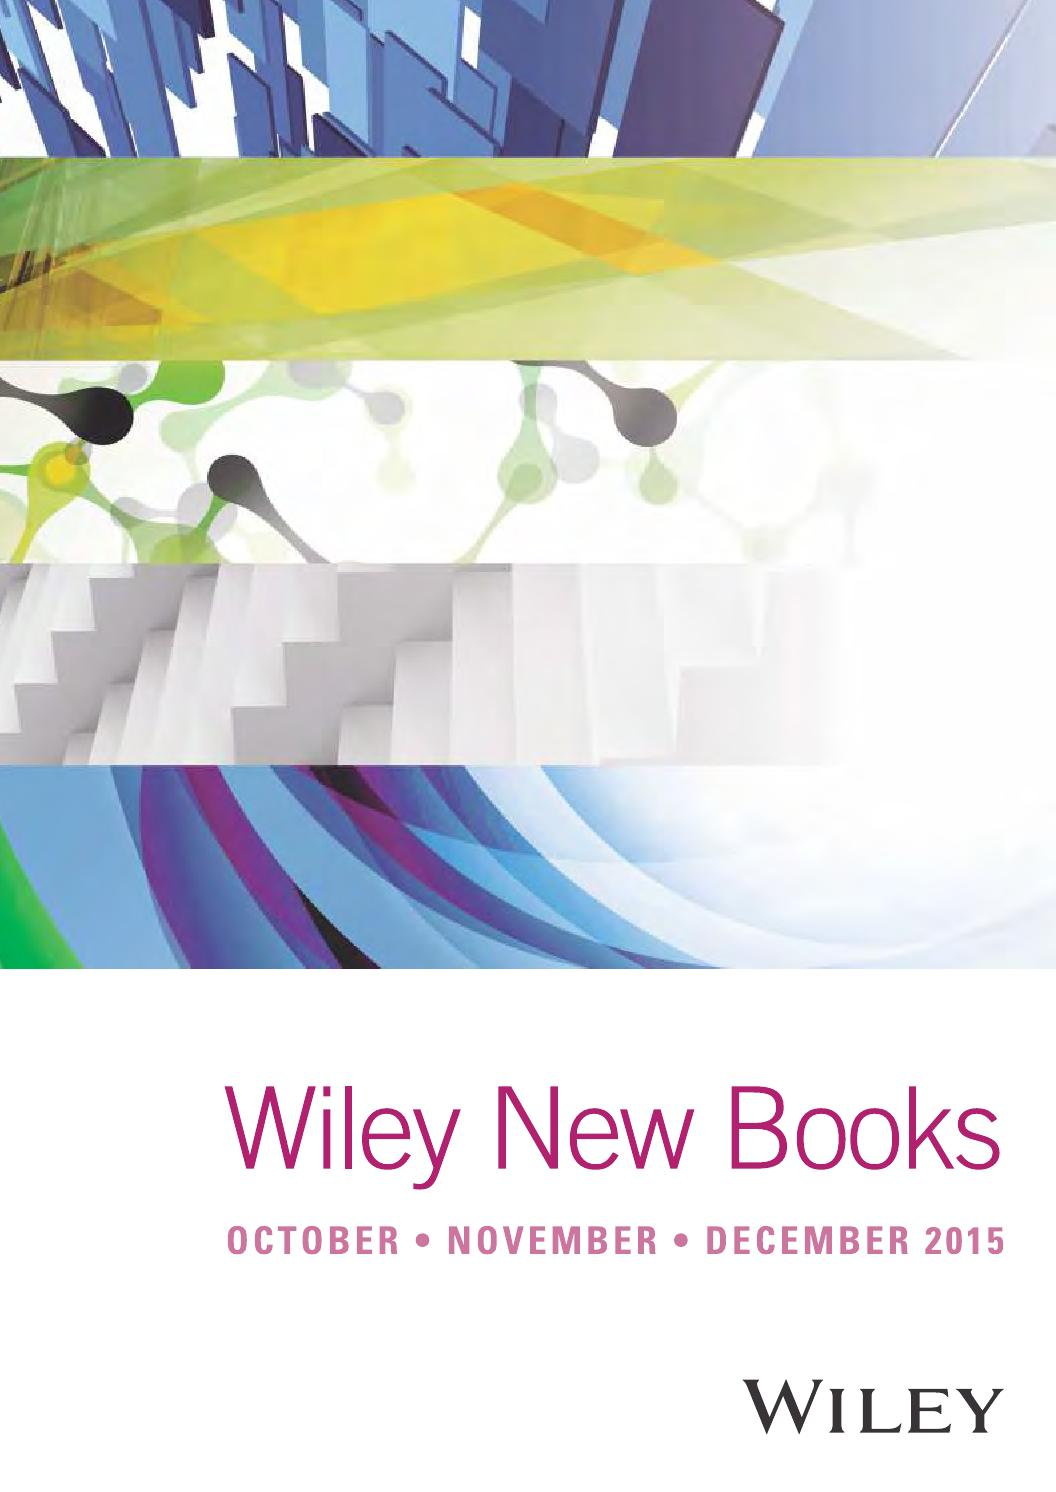 Wiley New Books Oct Dec 15 By India Issuu Topic Driving Light Wiring With Auto Hi Beam On 101 Read 10730